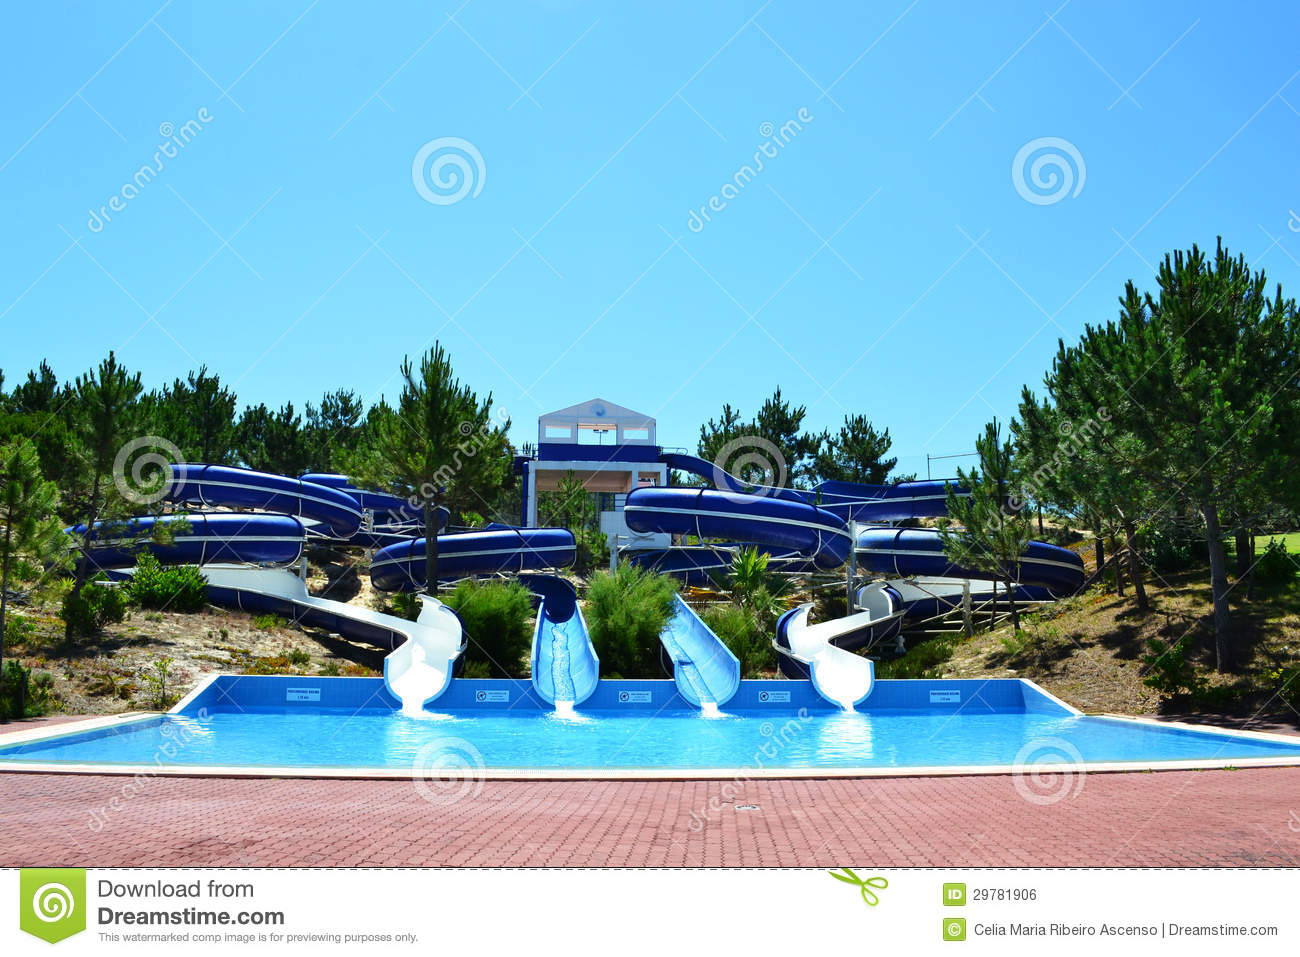 Aqua park slides royalty free stock image image 29781906 for Swimming pool slides